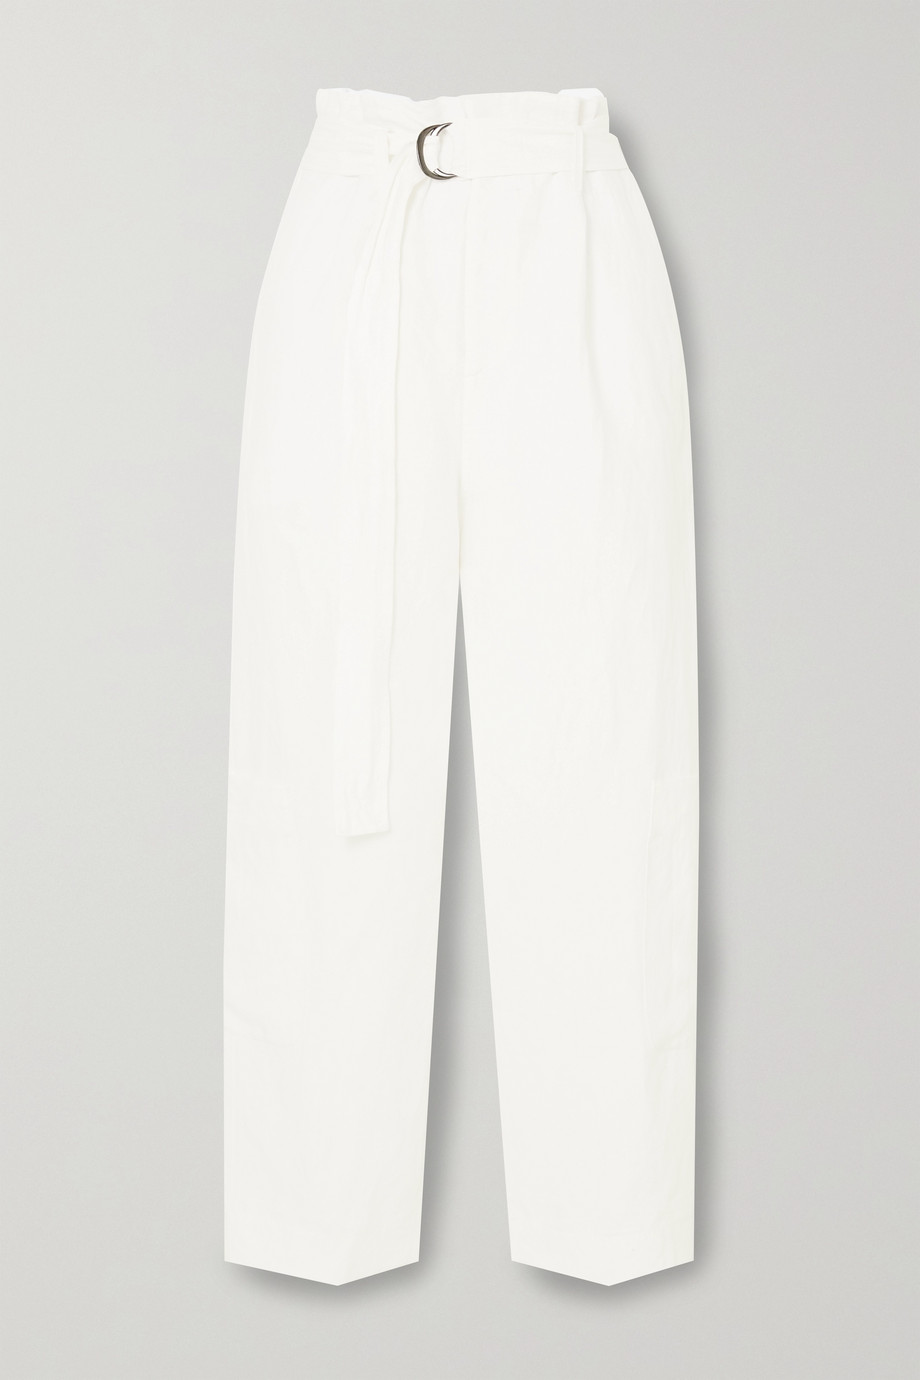 Bassike + Space For Giants oversized belted linen pants